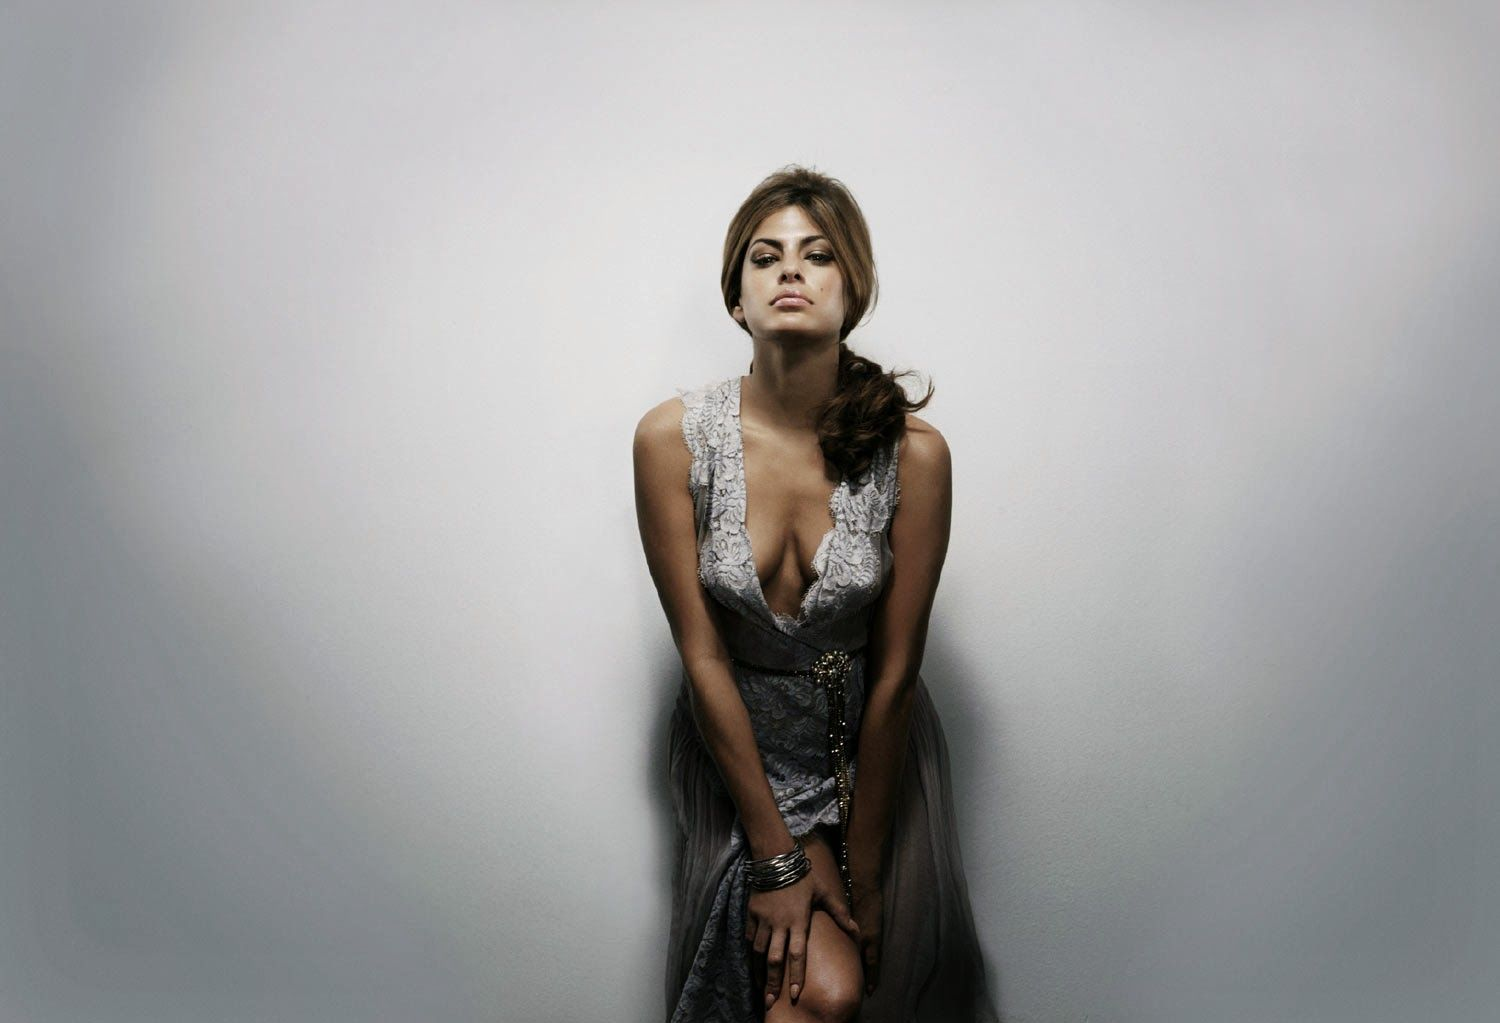 Cleavage Eva Mendes nude (82 photos), Sexy, Cleavage, Feet, lingerie 2006